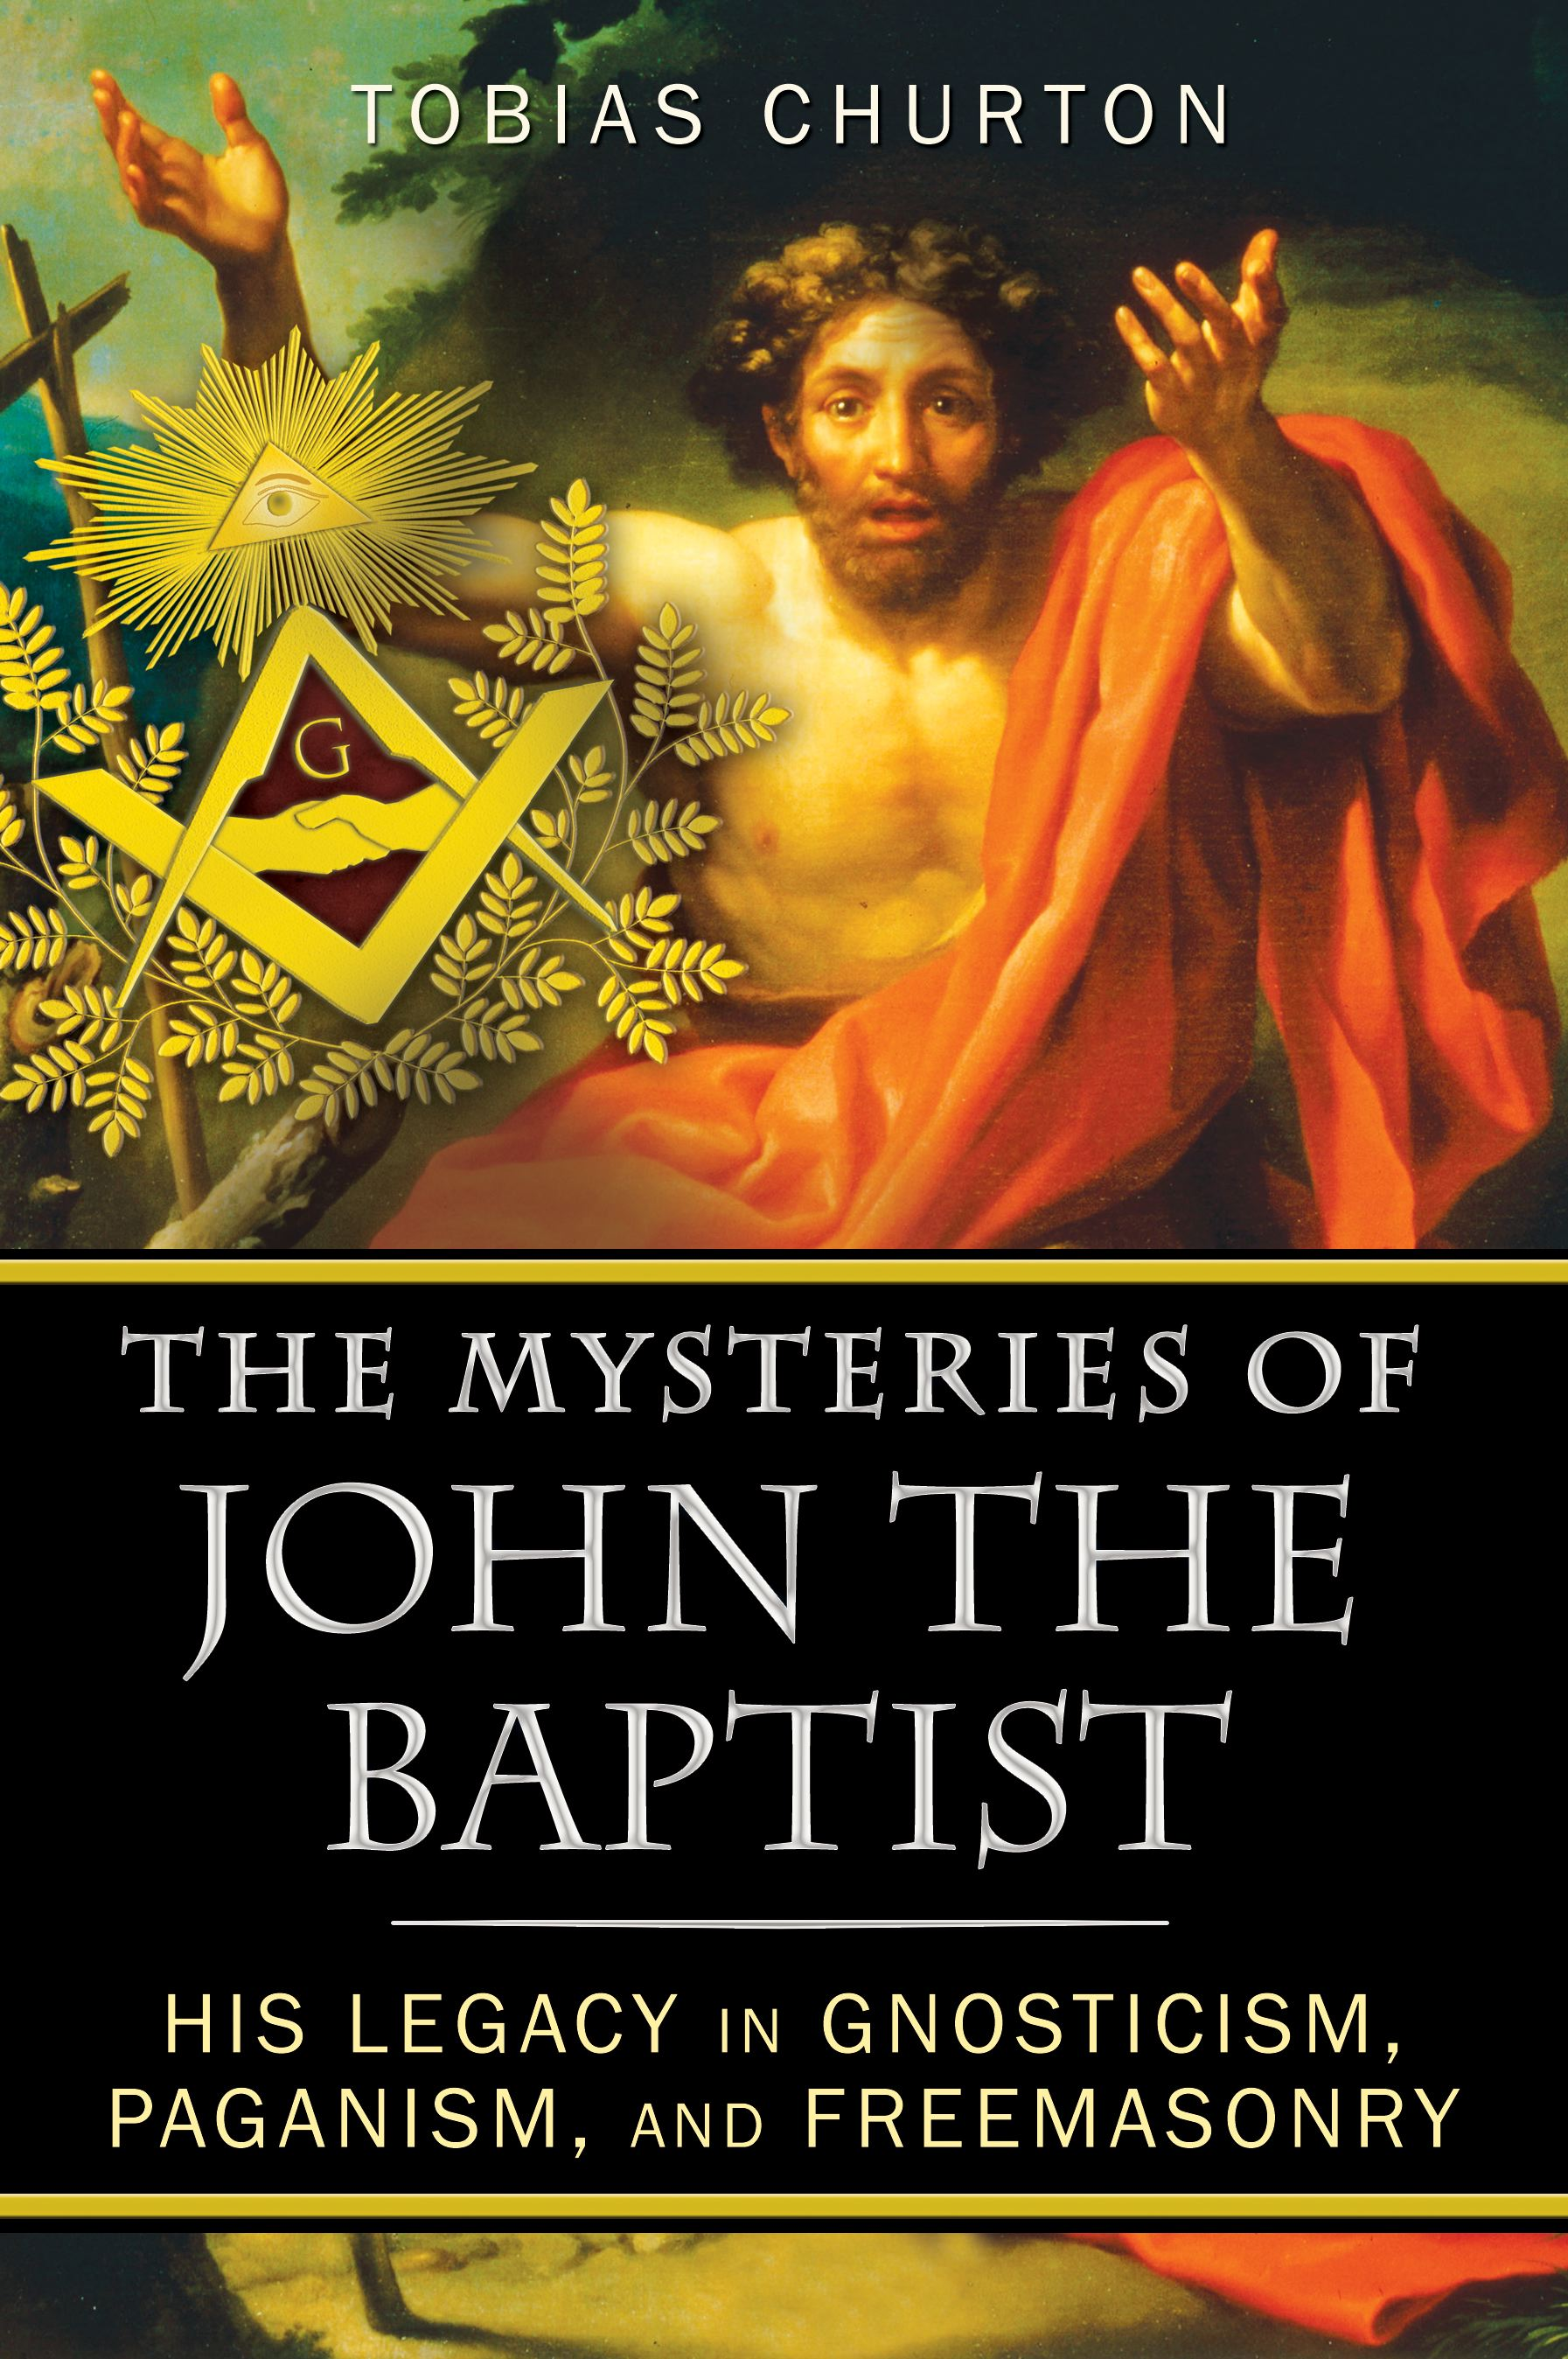 The-mysteries-of-john-the-baptist-9781594774744_hr